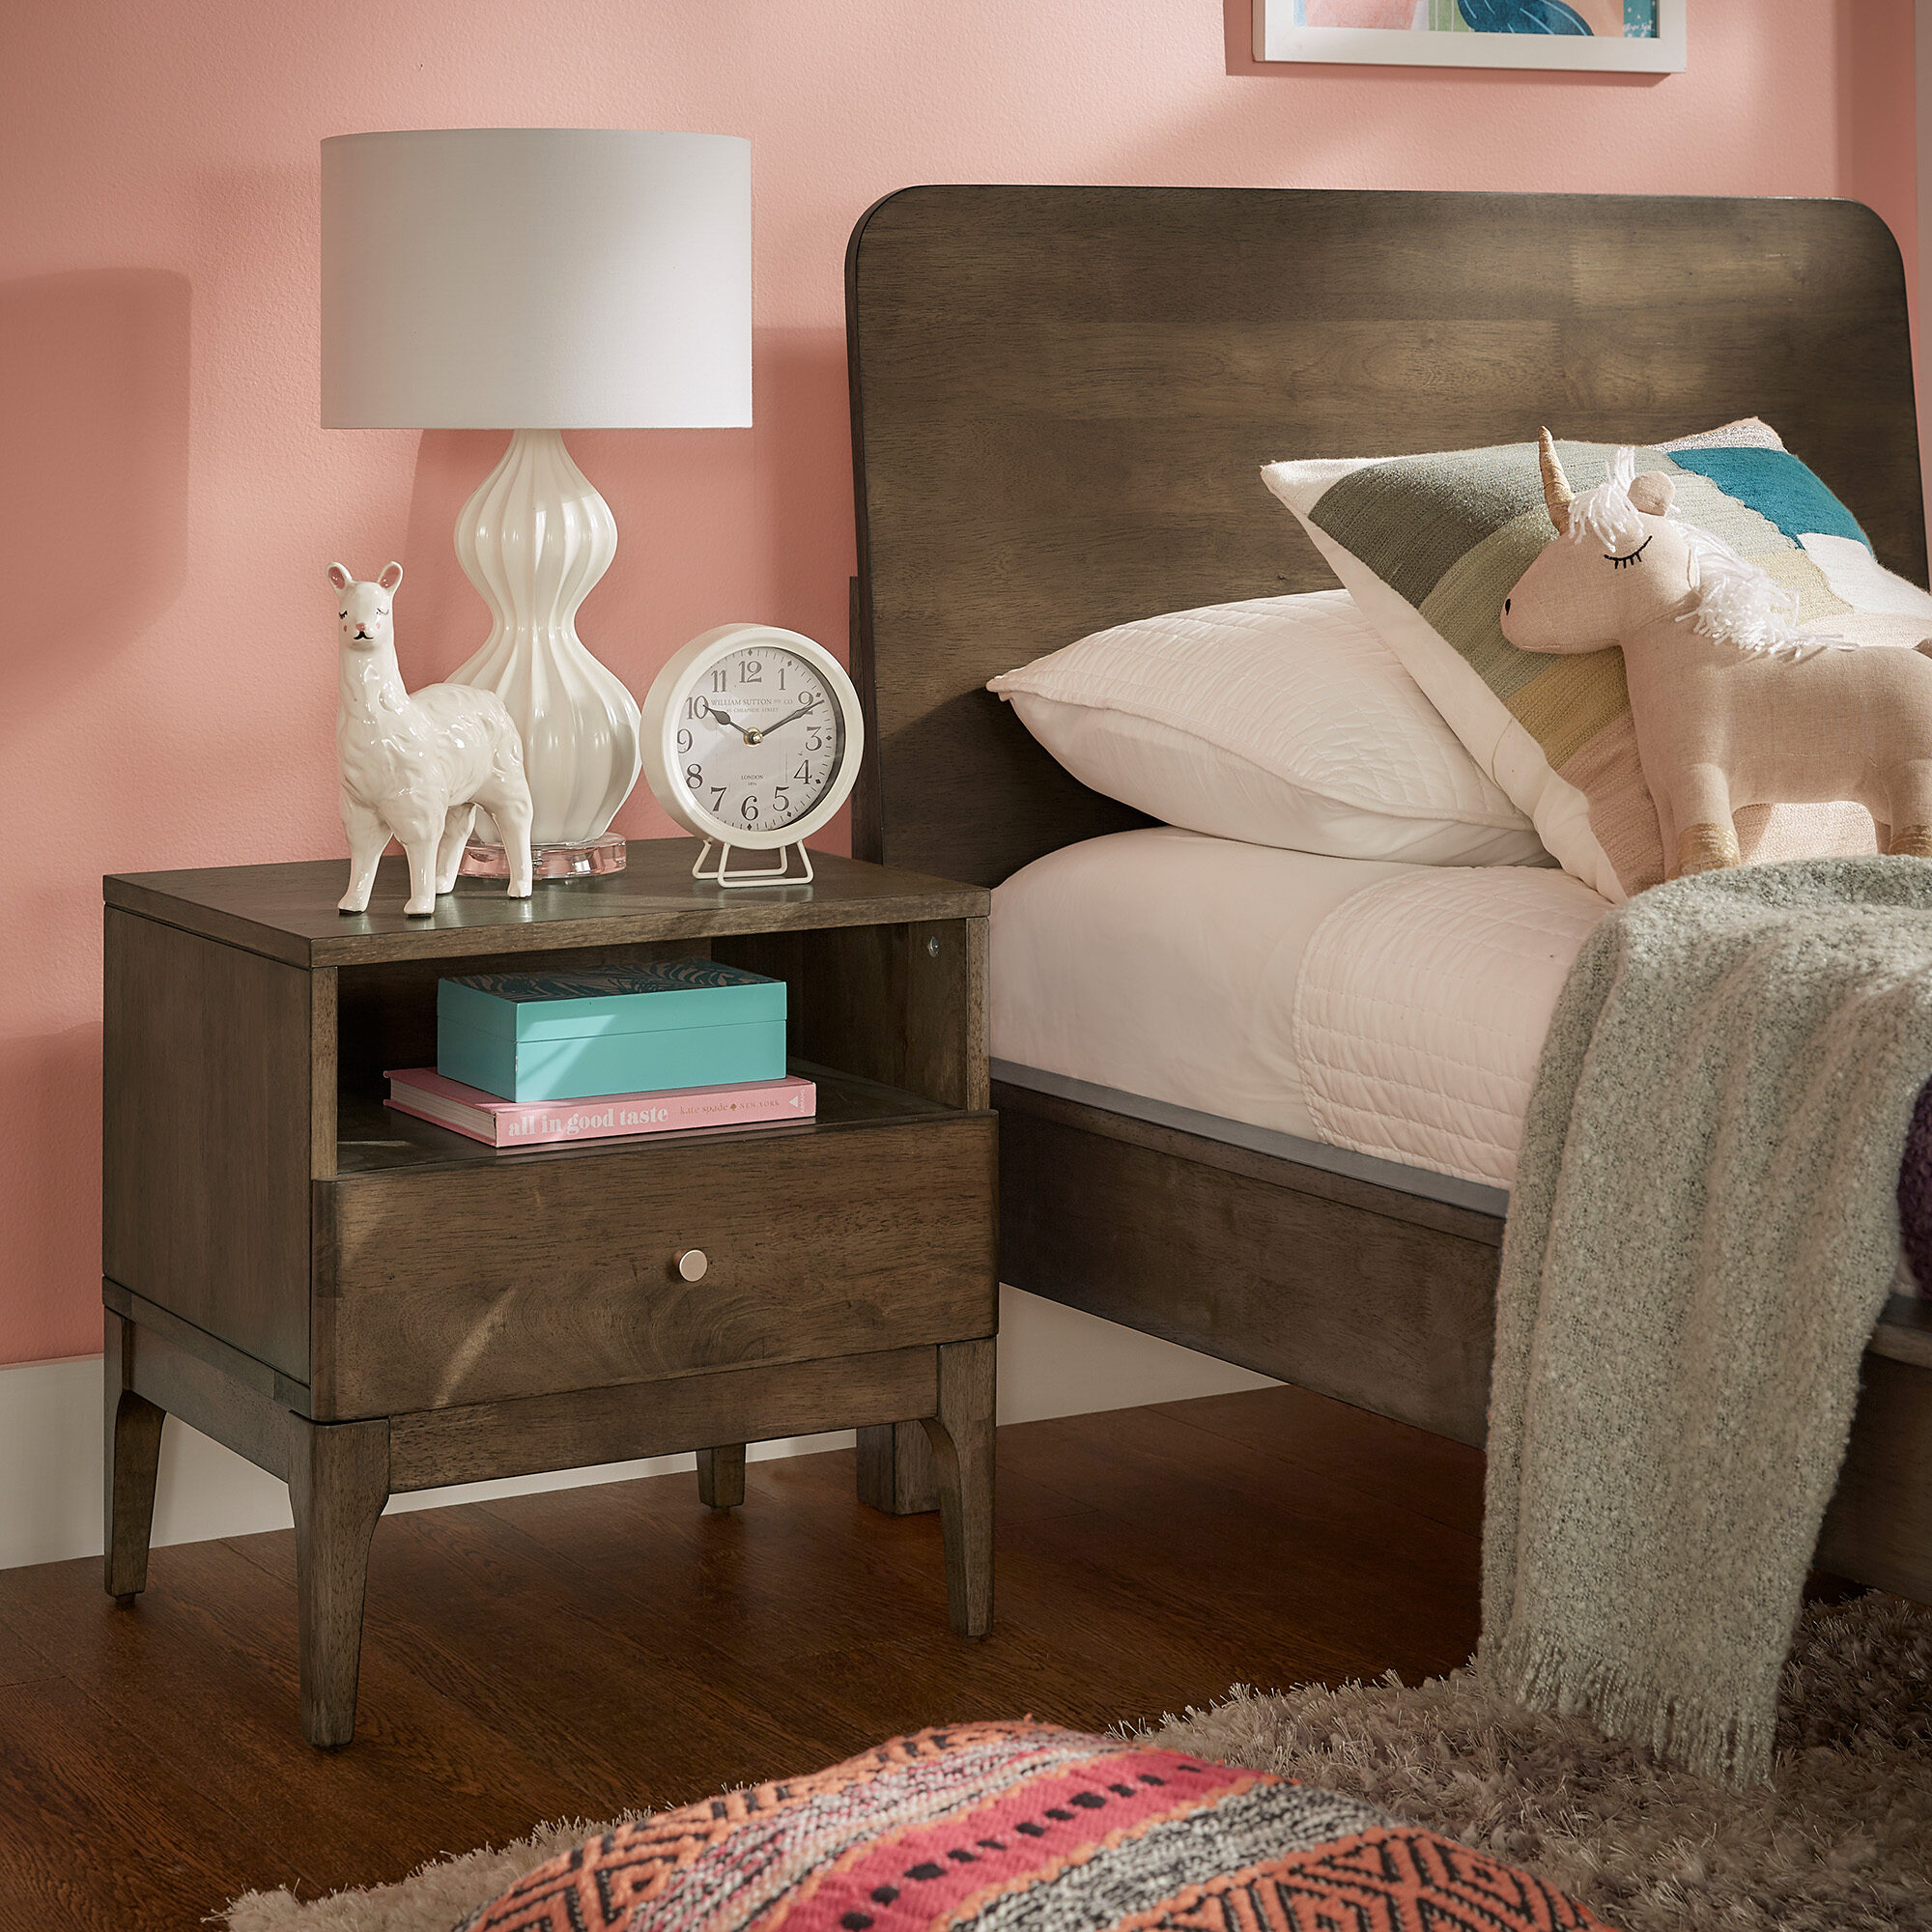 The fifth piece of teen bedroom furniture is a nightstand. This is our Ozan Walnut Finish 1-drawer Nightstand by iNSPIRE Q Modern. This nightstand has a walnut finish. It has a single drawer and a single cubby for concealed and open storage options.